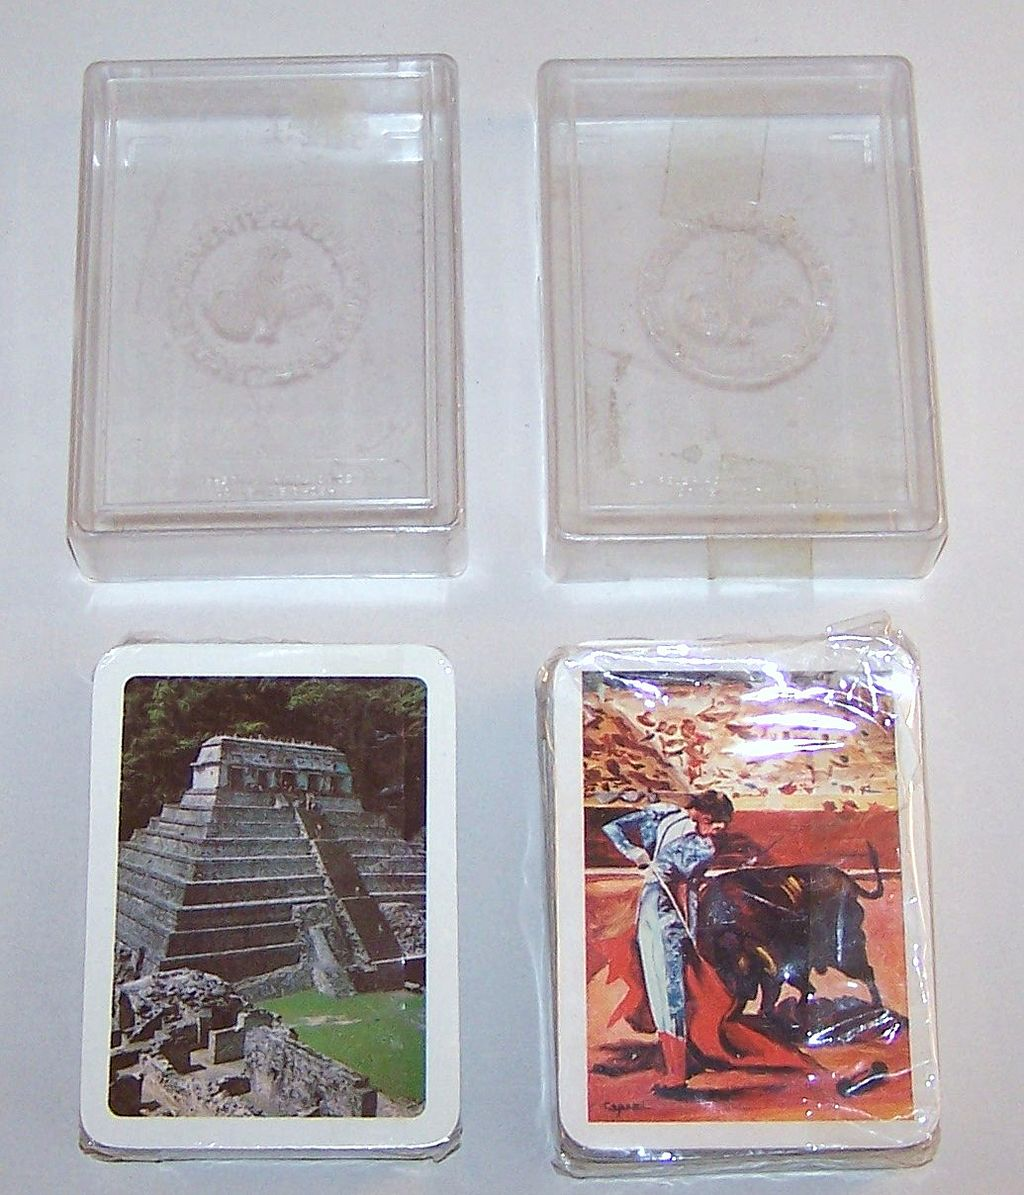 2 Decks Clemente Jacques Playing Cards: (i) Bullfighting; (ii) Palenque Mayan Ruins